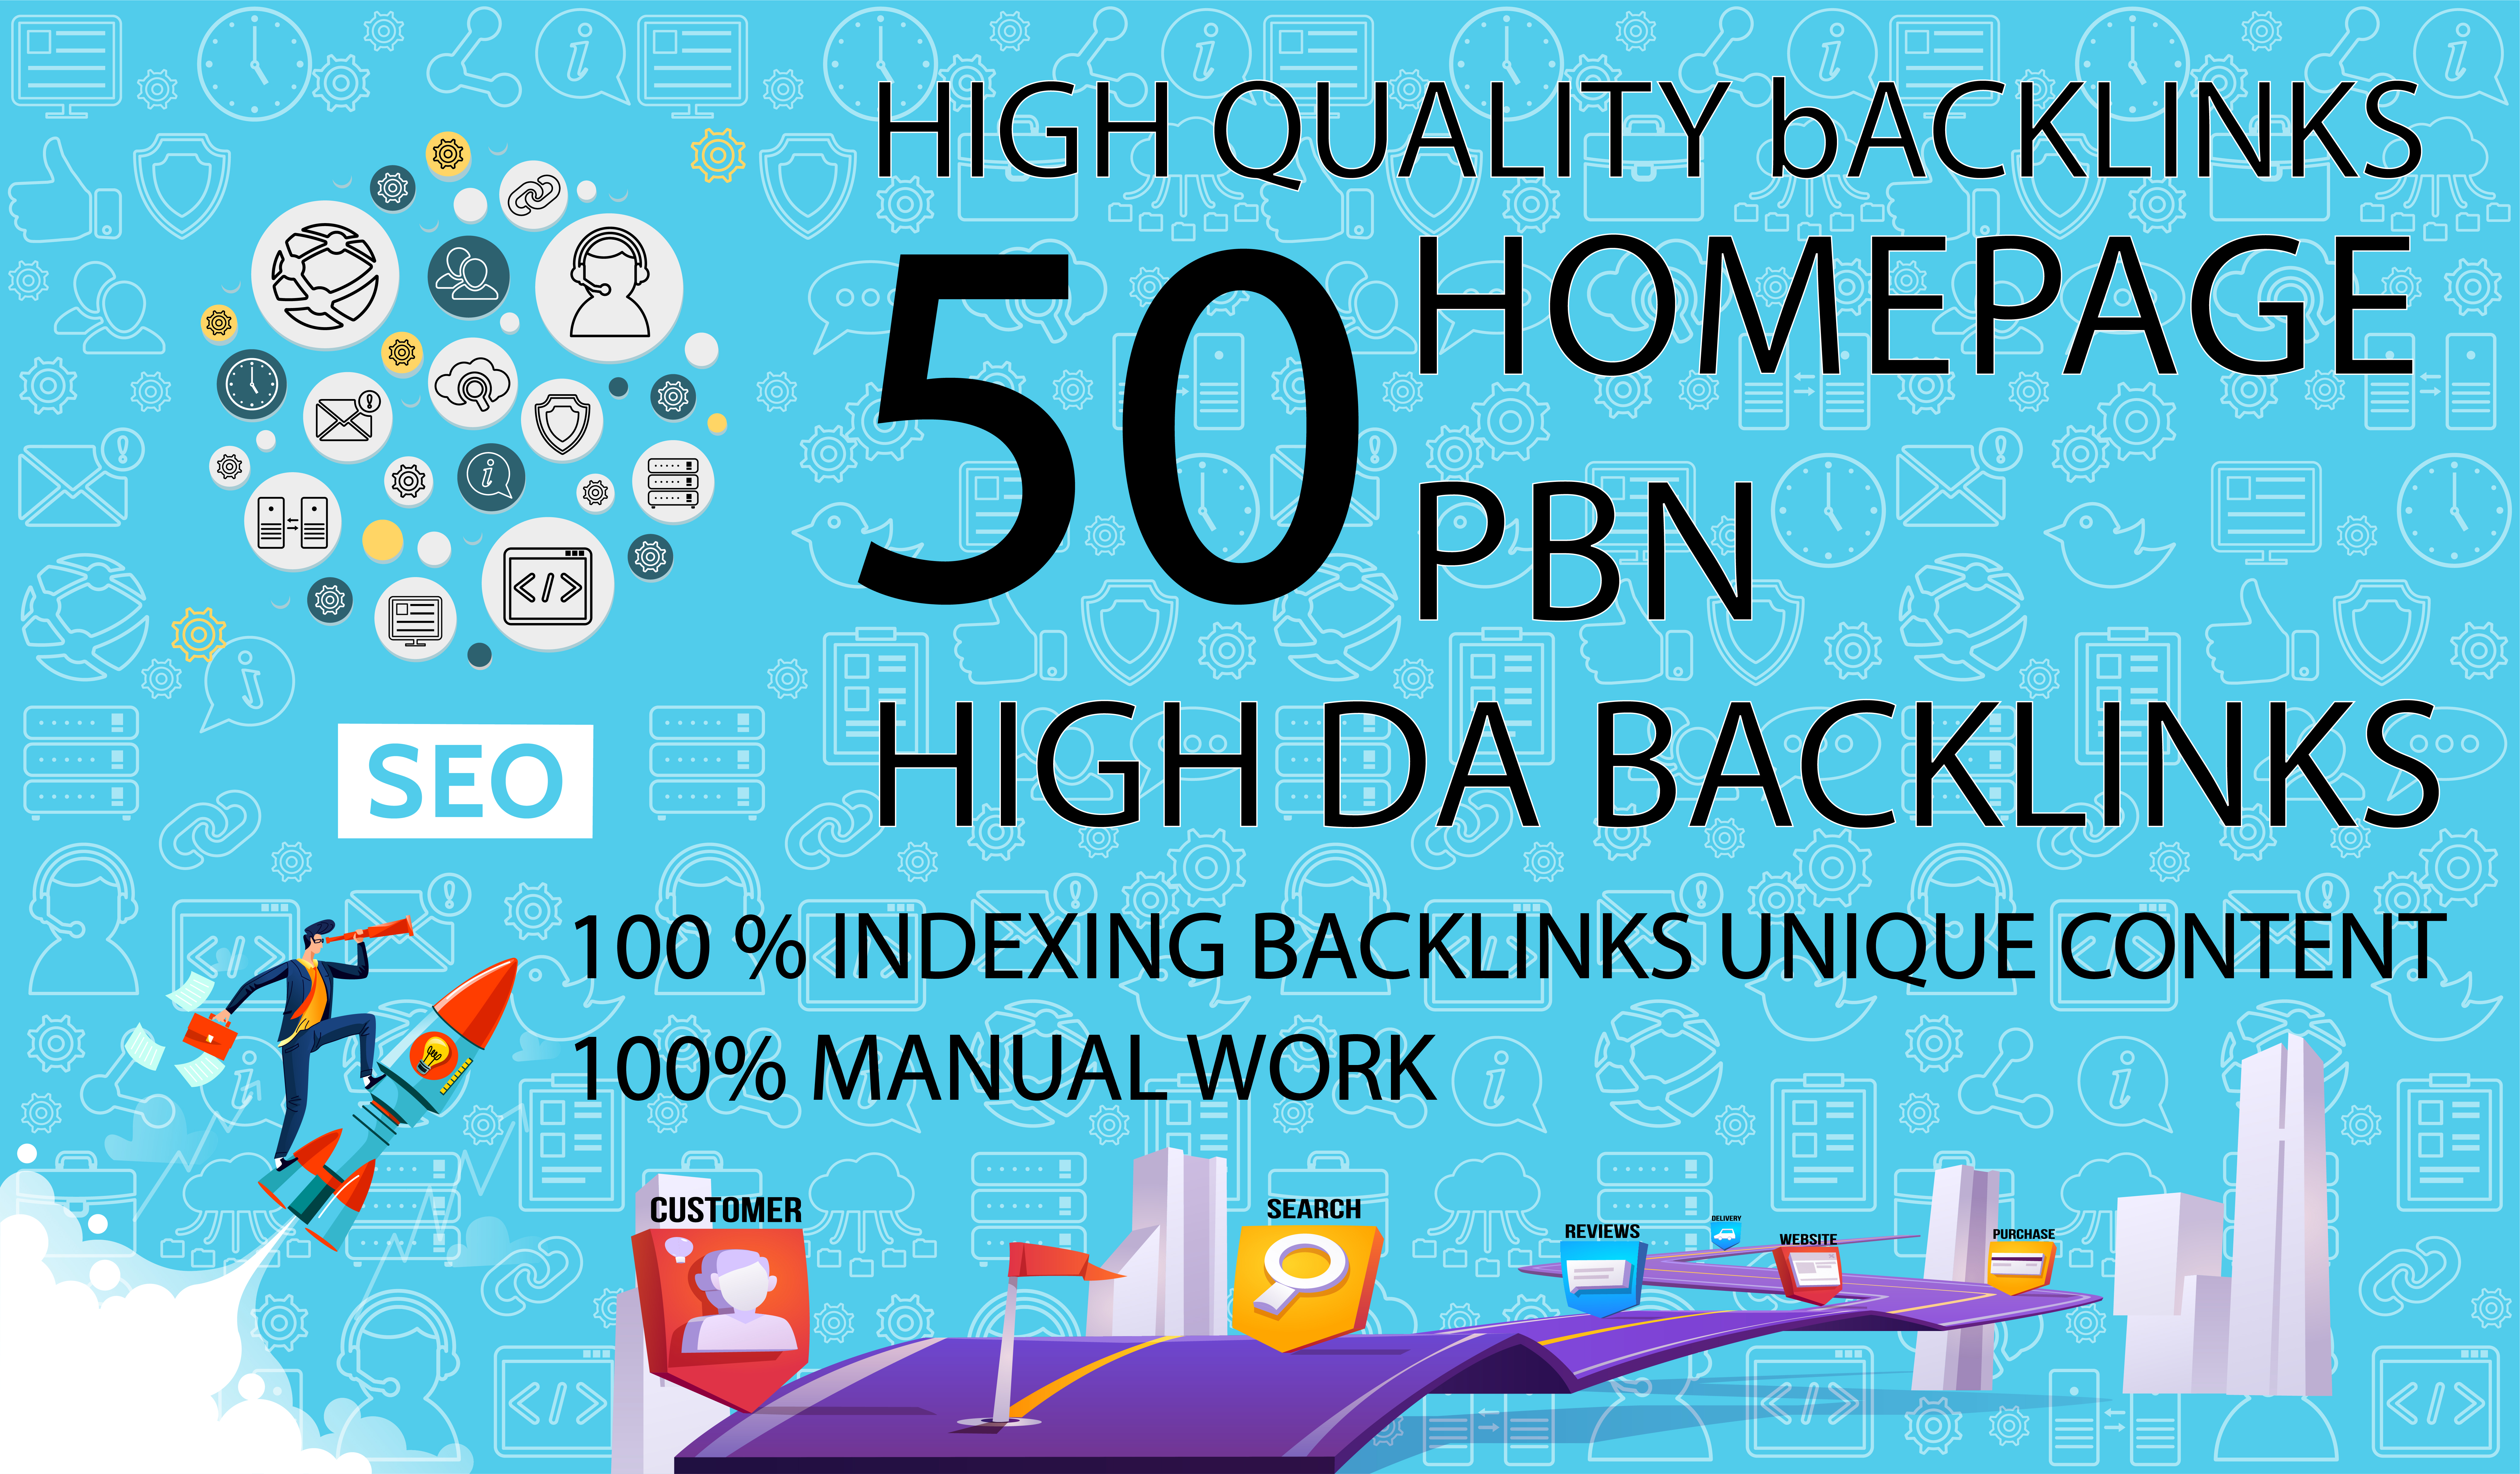 Get 50 Dofollow Homepage PBN Backlinks On High DA PA